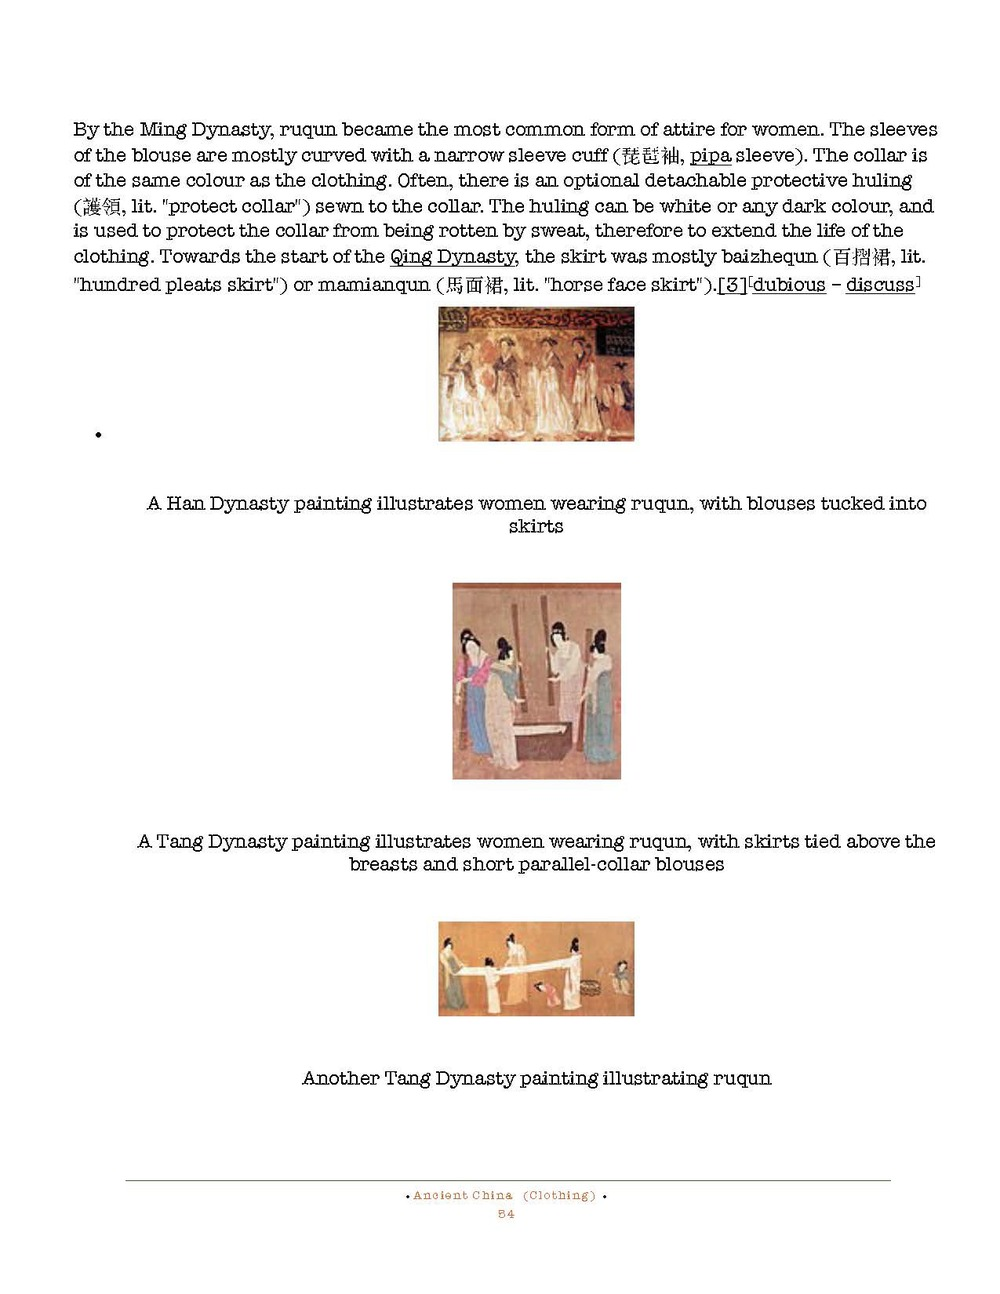 HOCE- Ancient China Notes (clothing)_Page_54.jpg